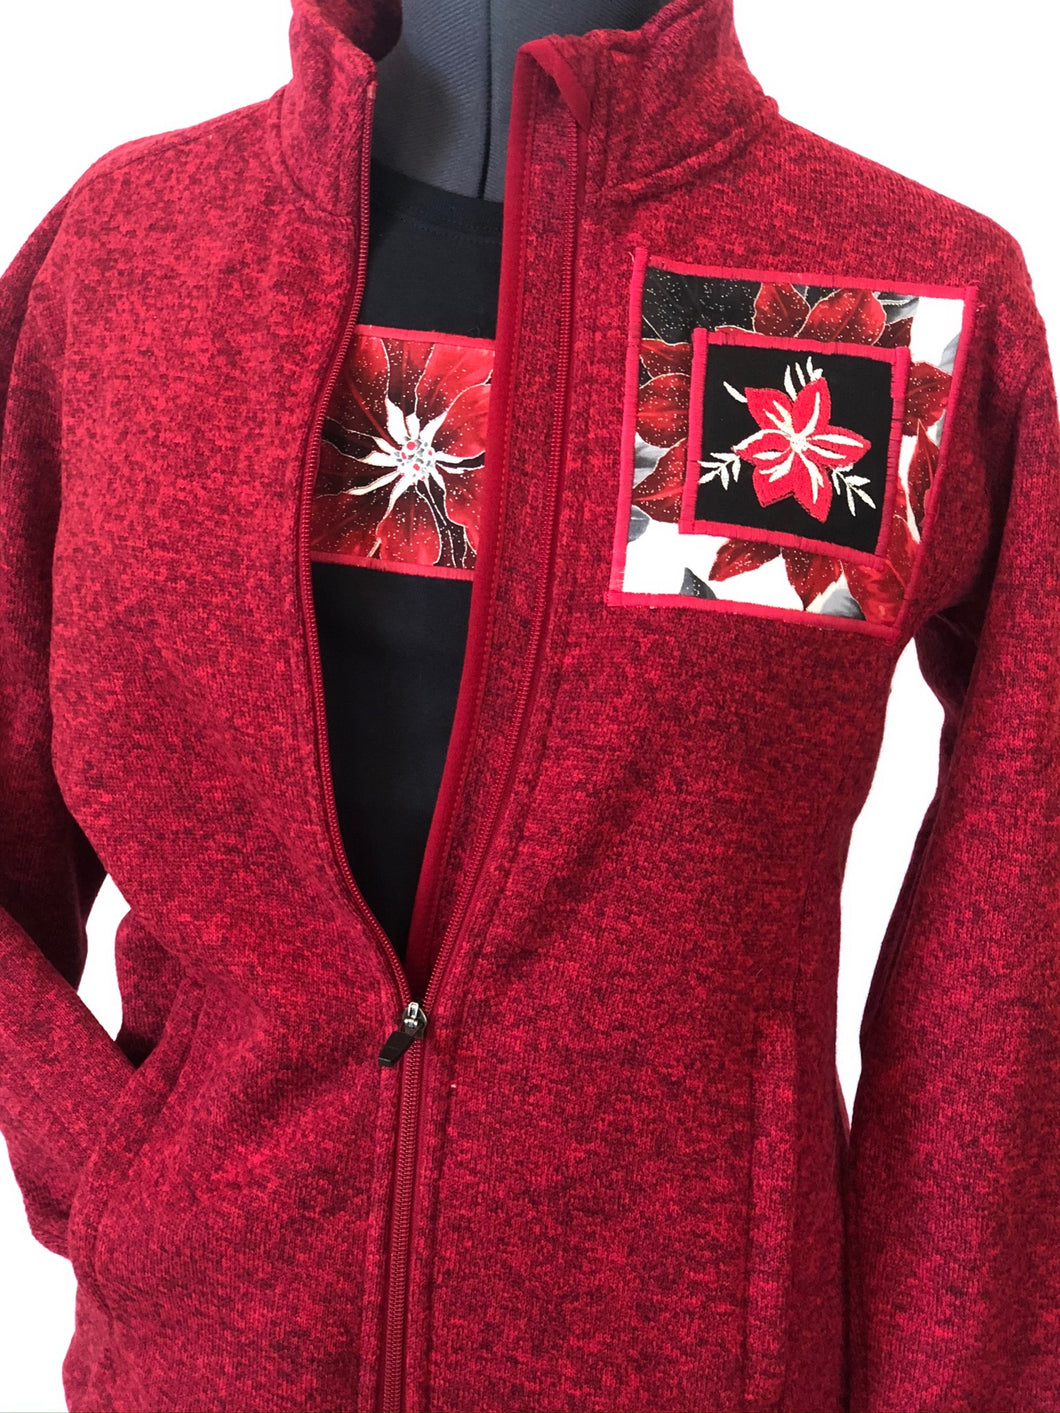 Red Heather Zip Jacket Matching Short Sleeve T-Shirt